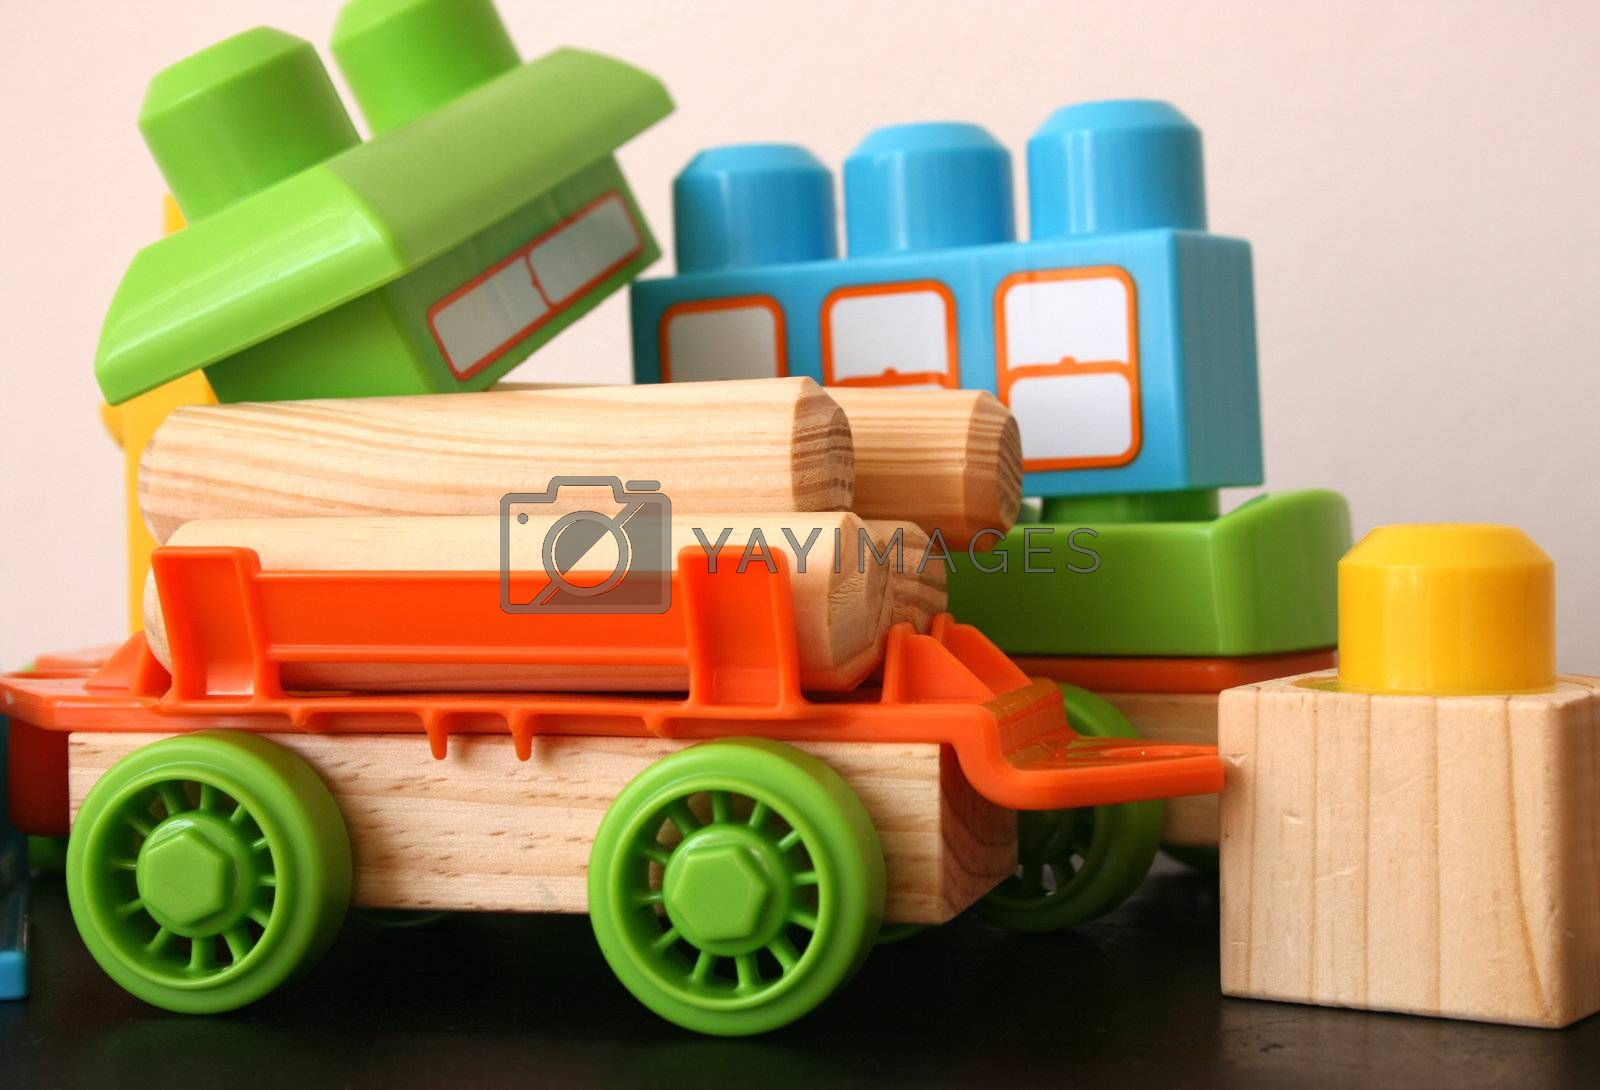 Fun educational toys for children in bright colors